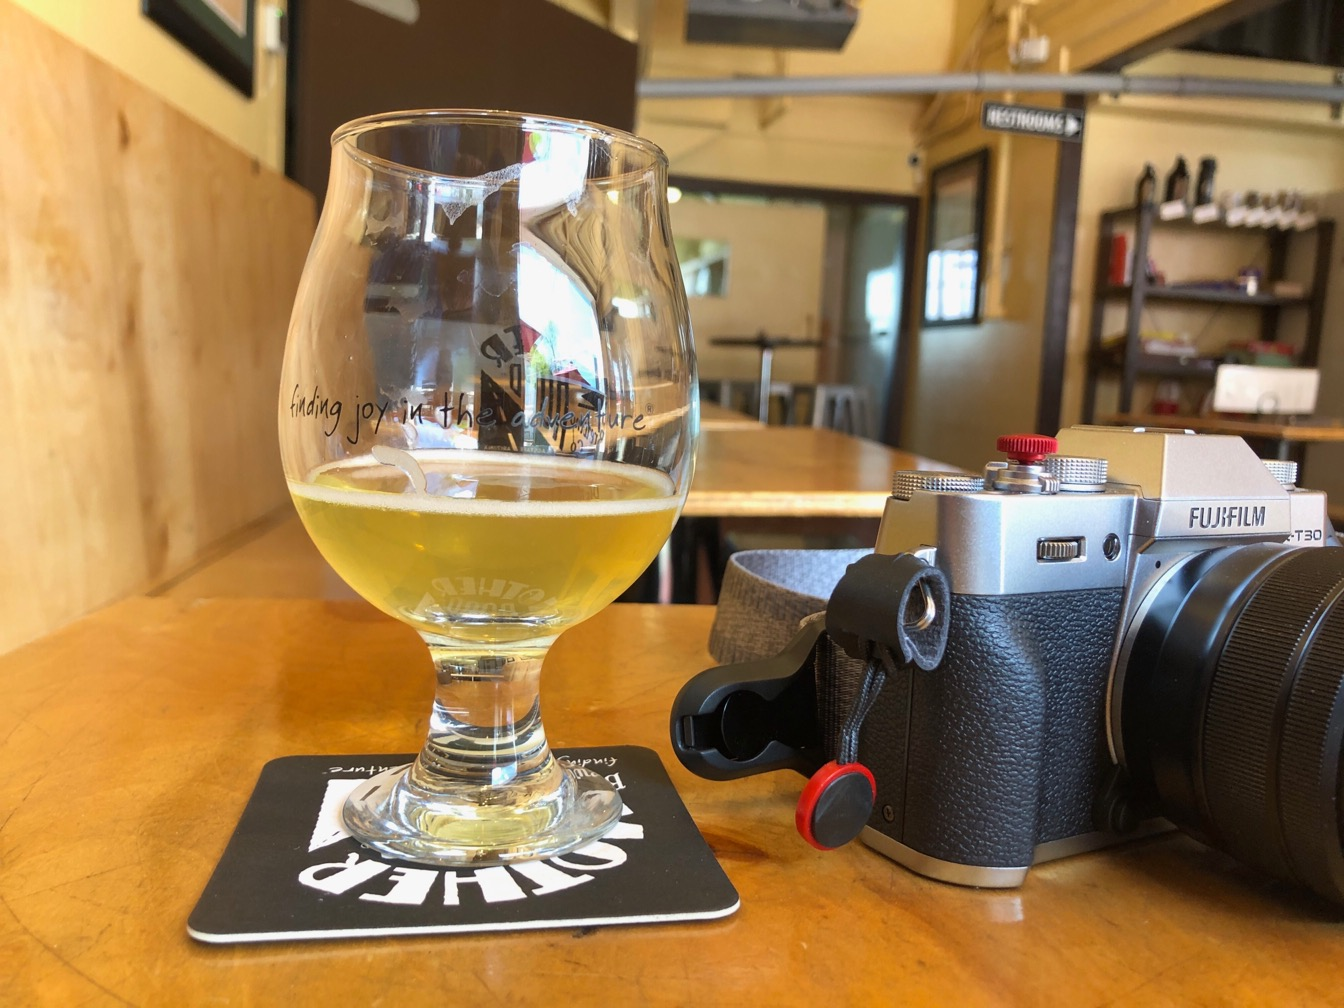 Photo of a tulip shaped beer glass with a Fiji camera next to it